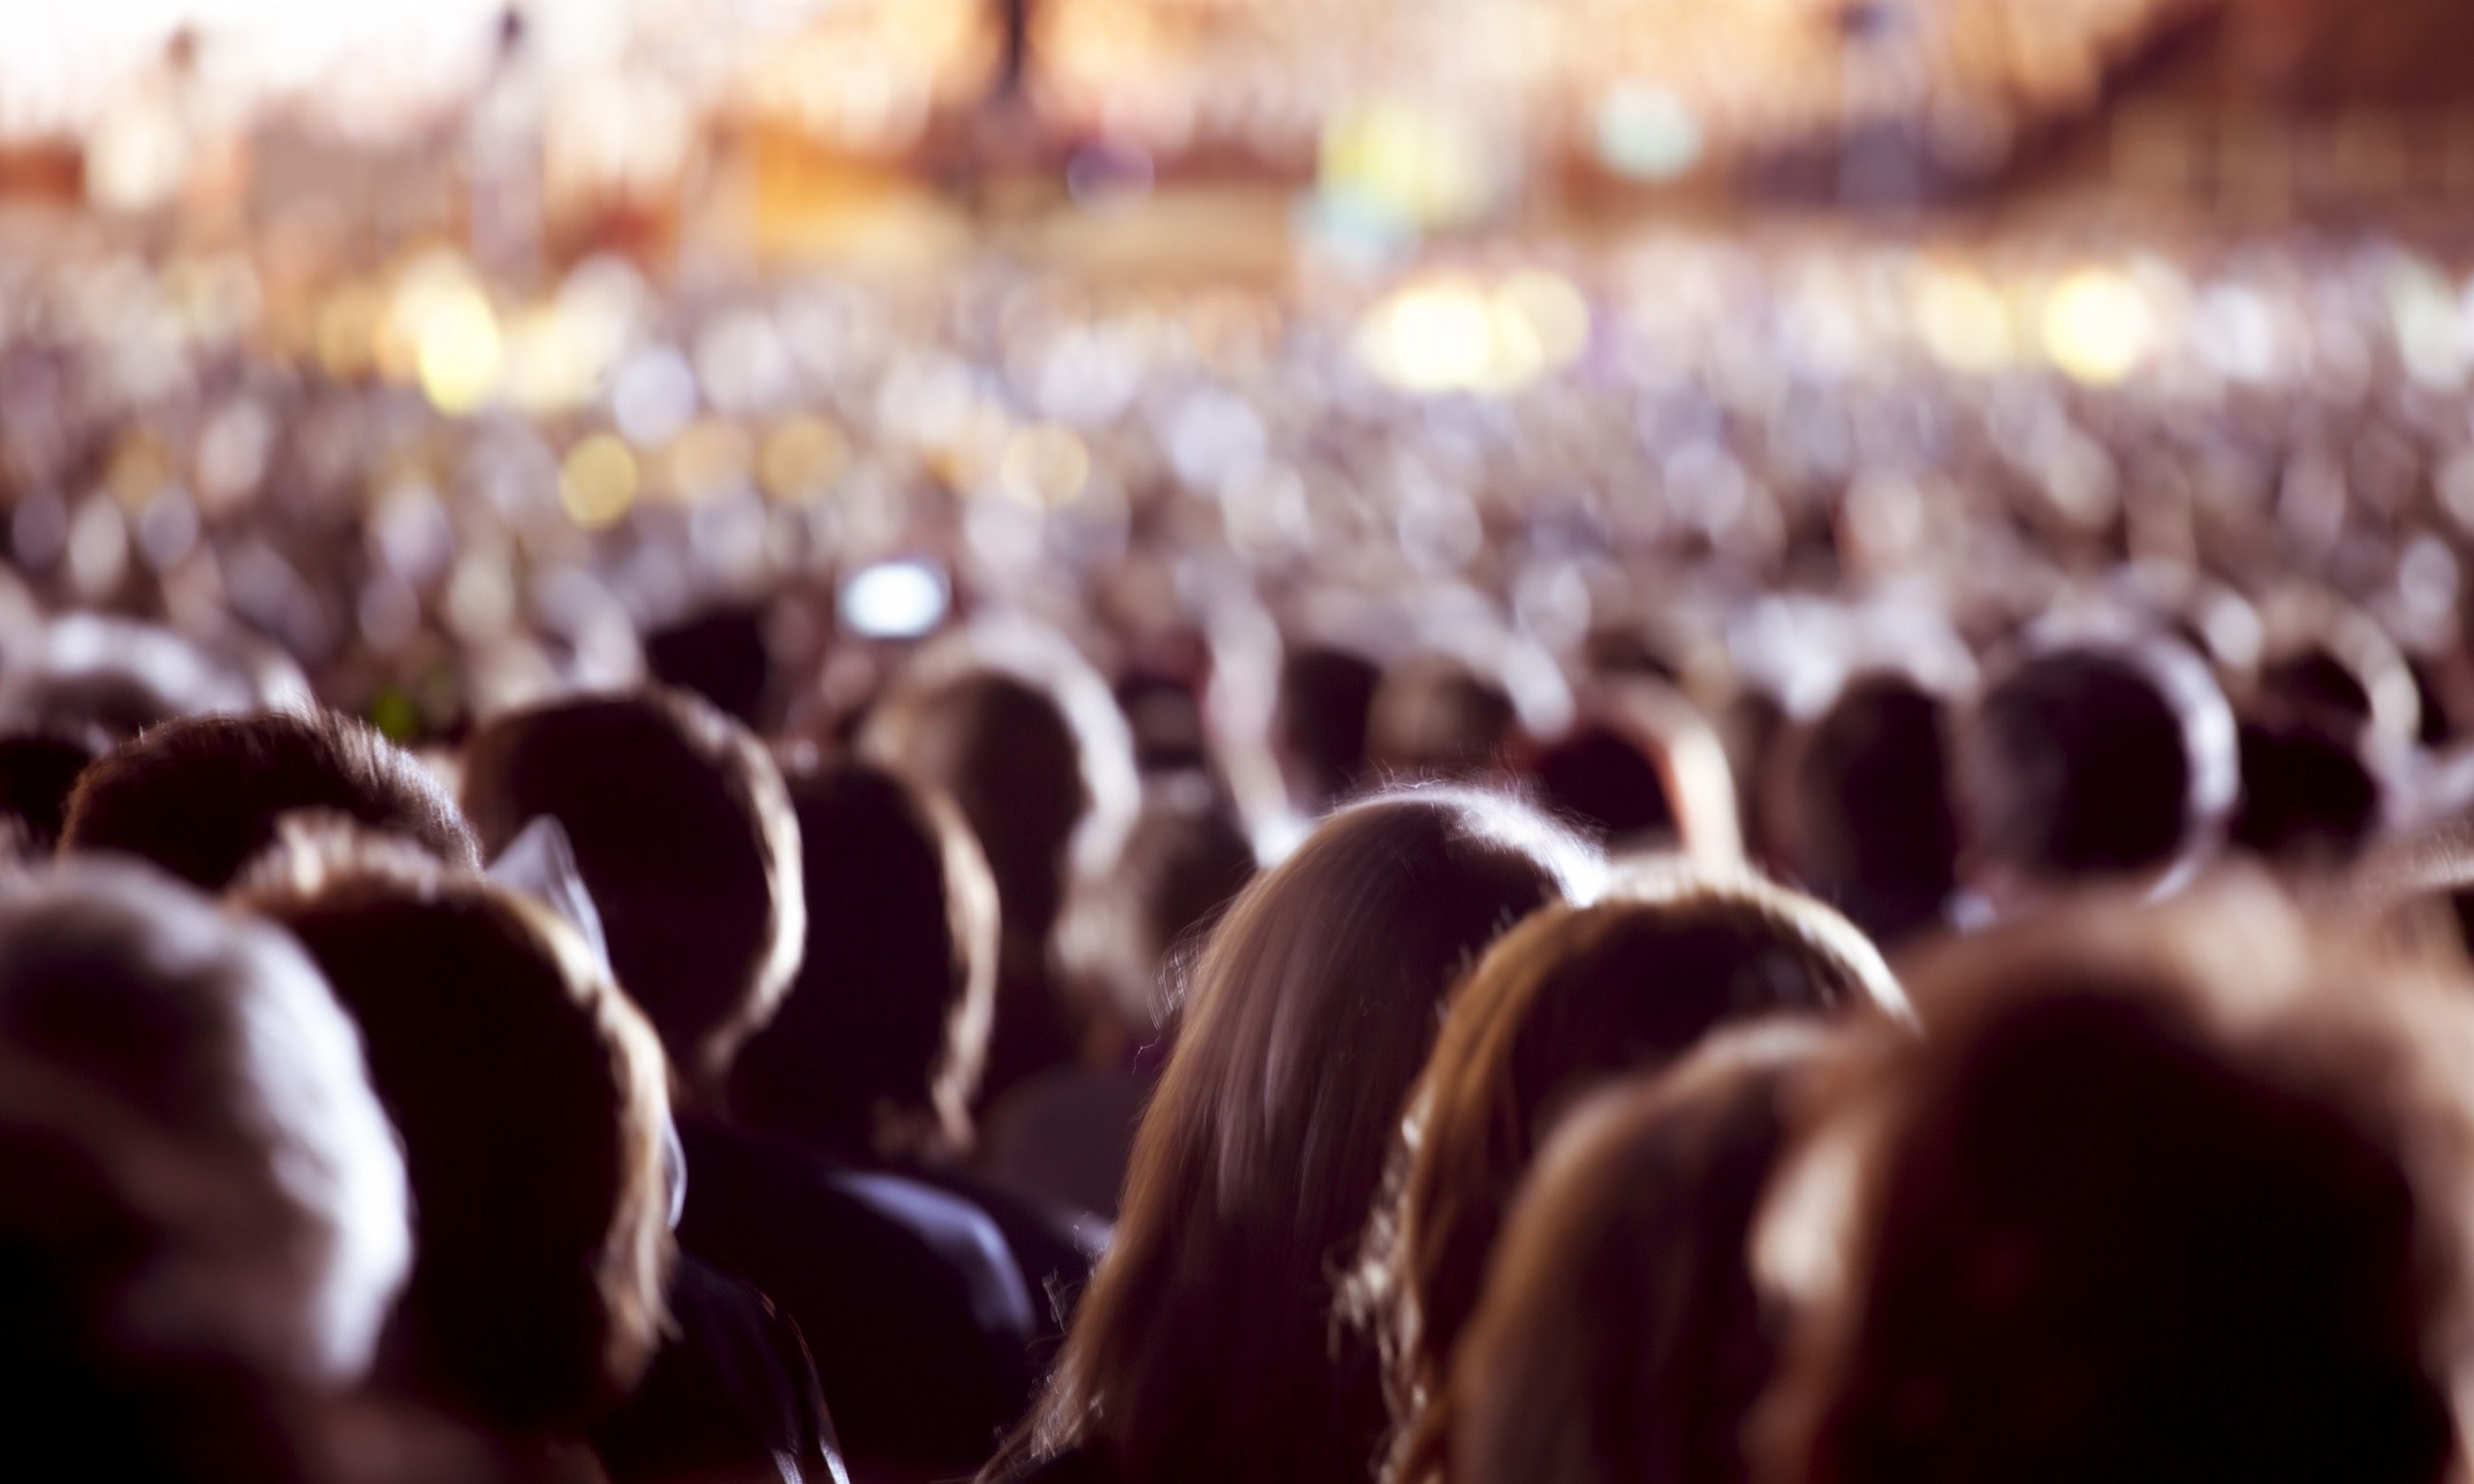 Blend into the crowd (Dreamstime)